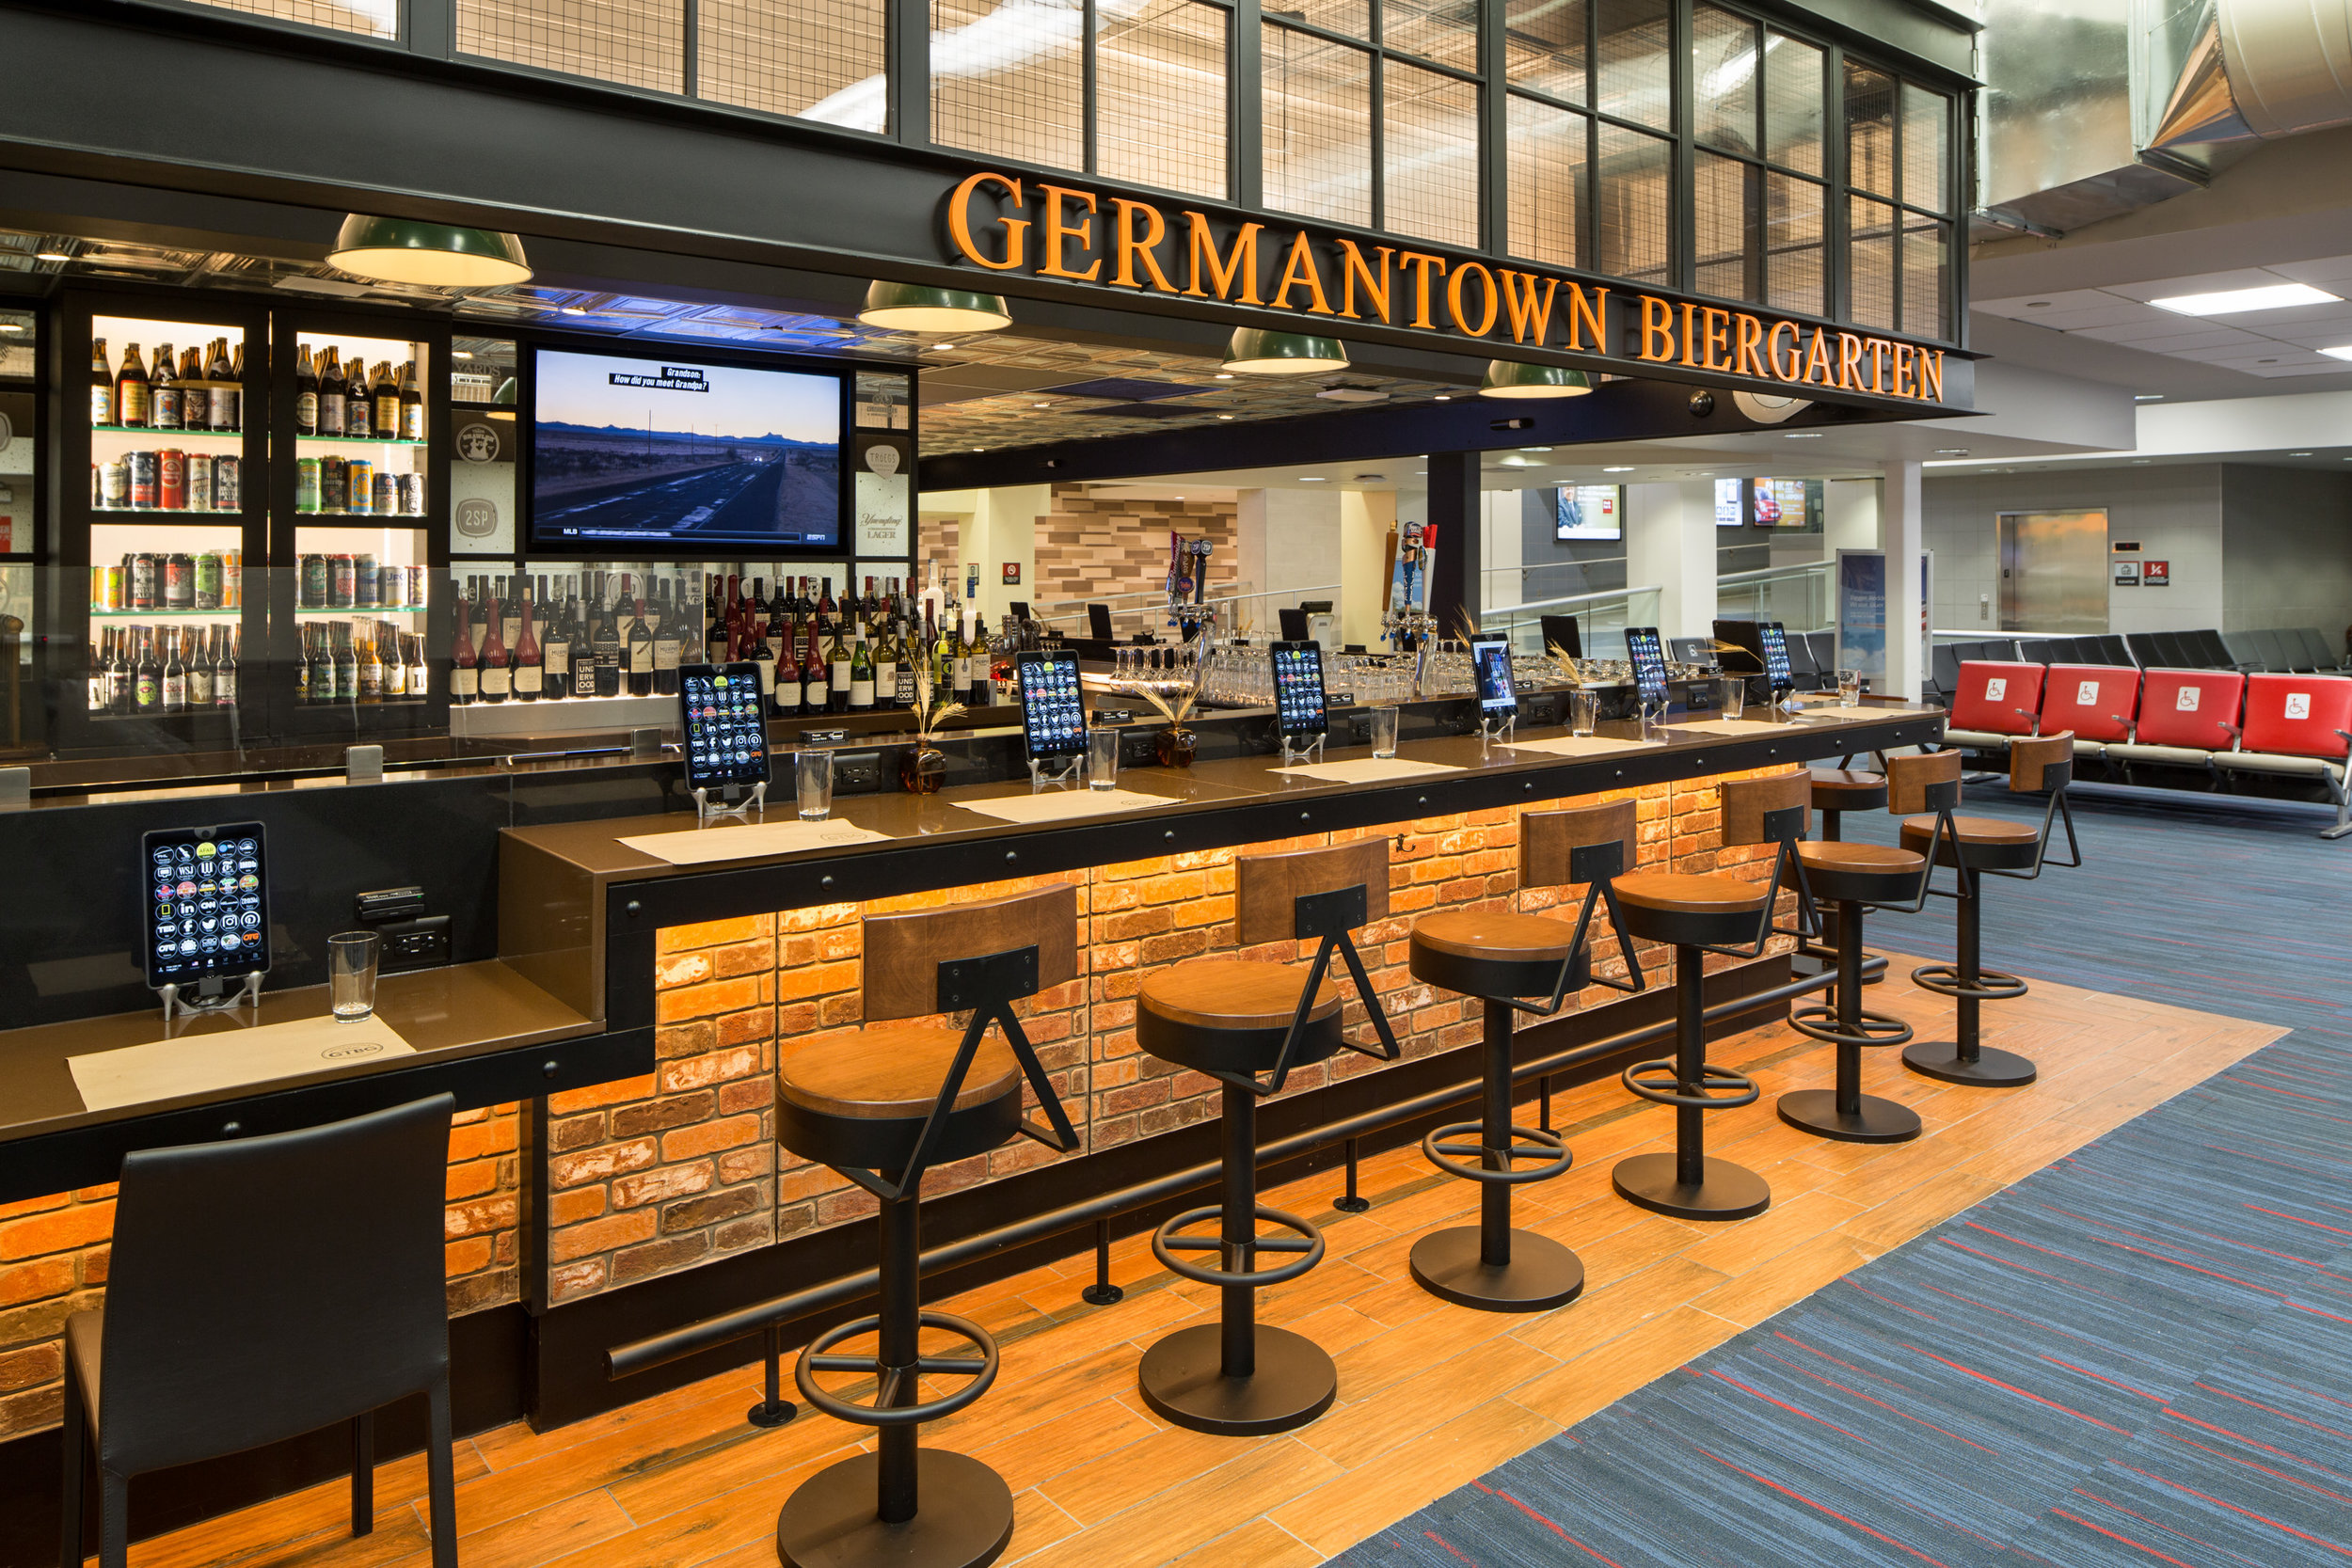 The aptly named Germantown Biergarten at Gate B9 – a true taste of Philly.